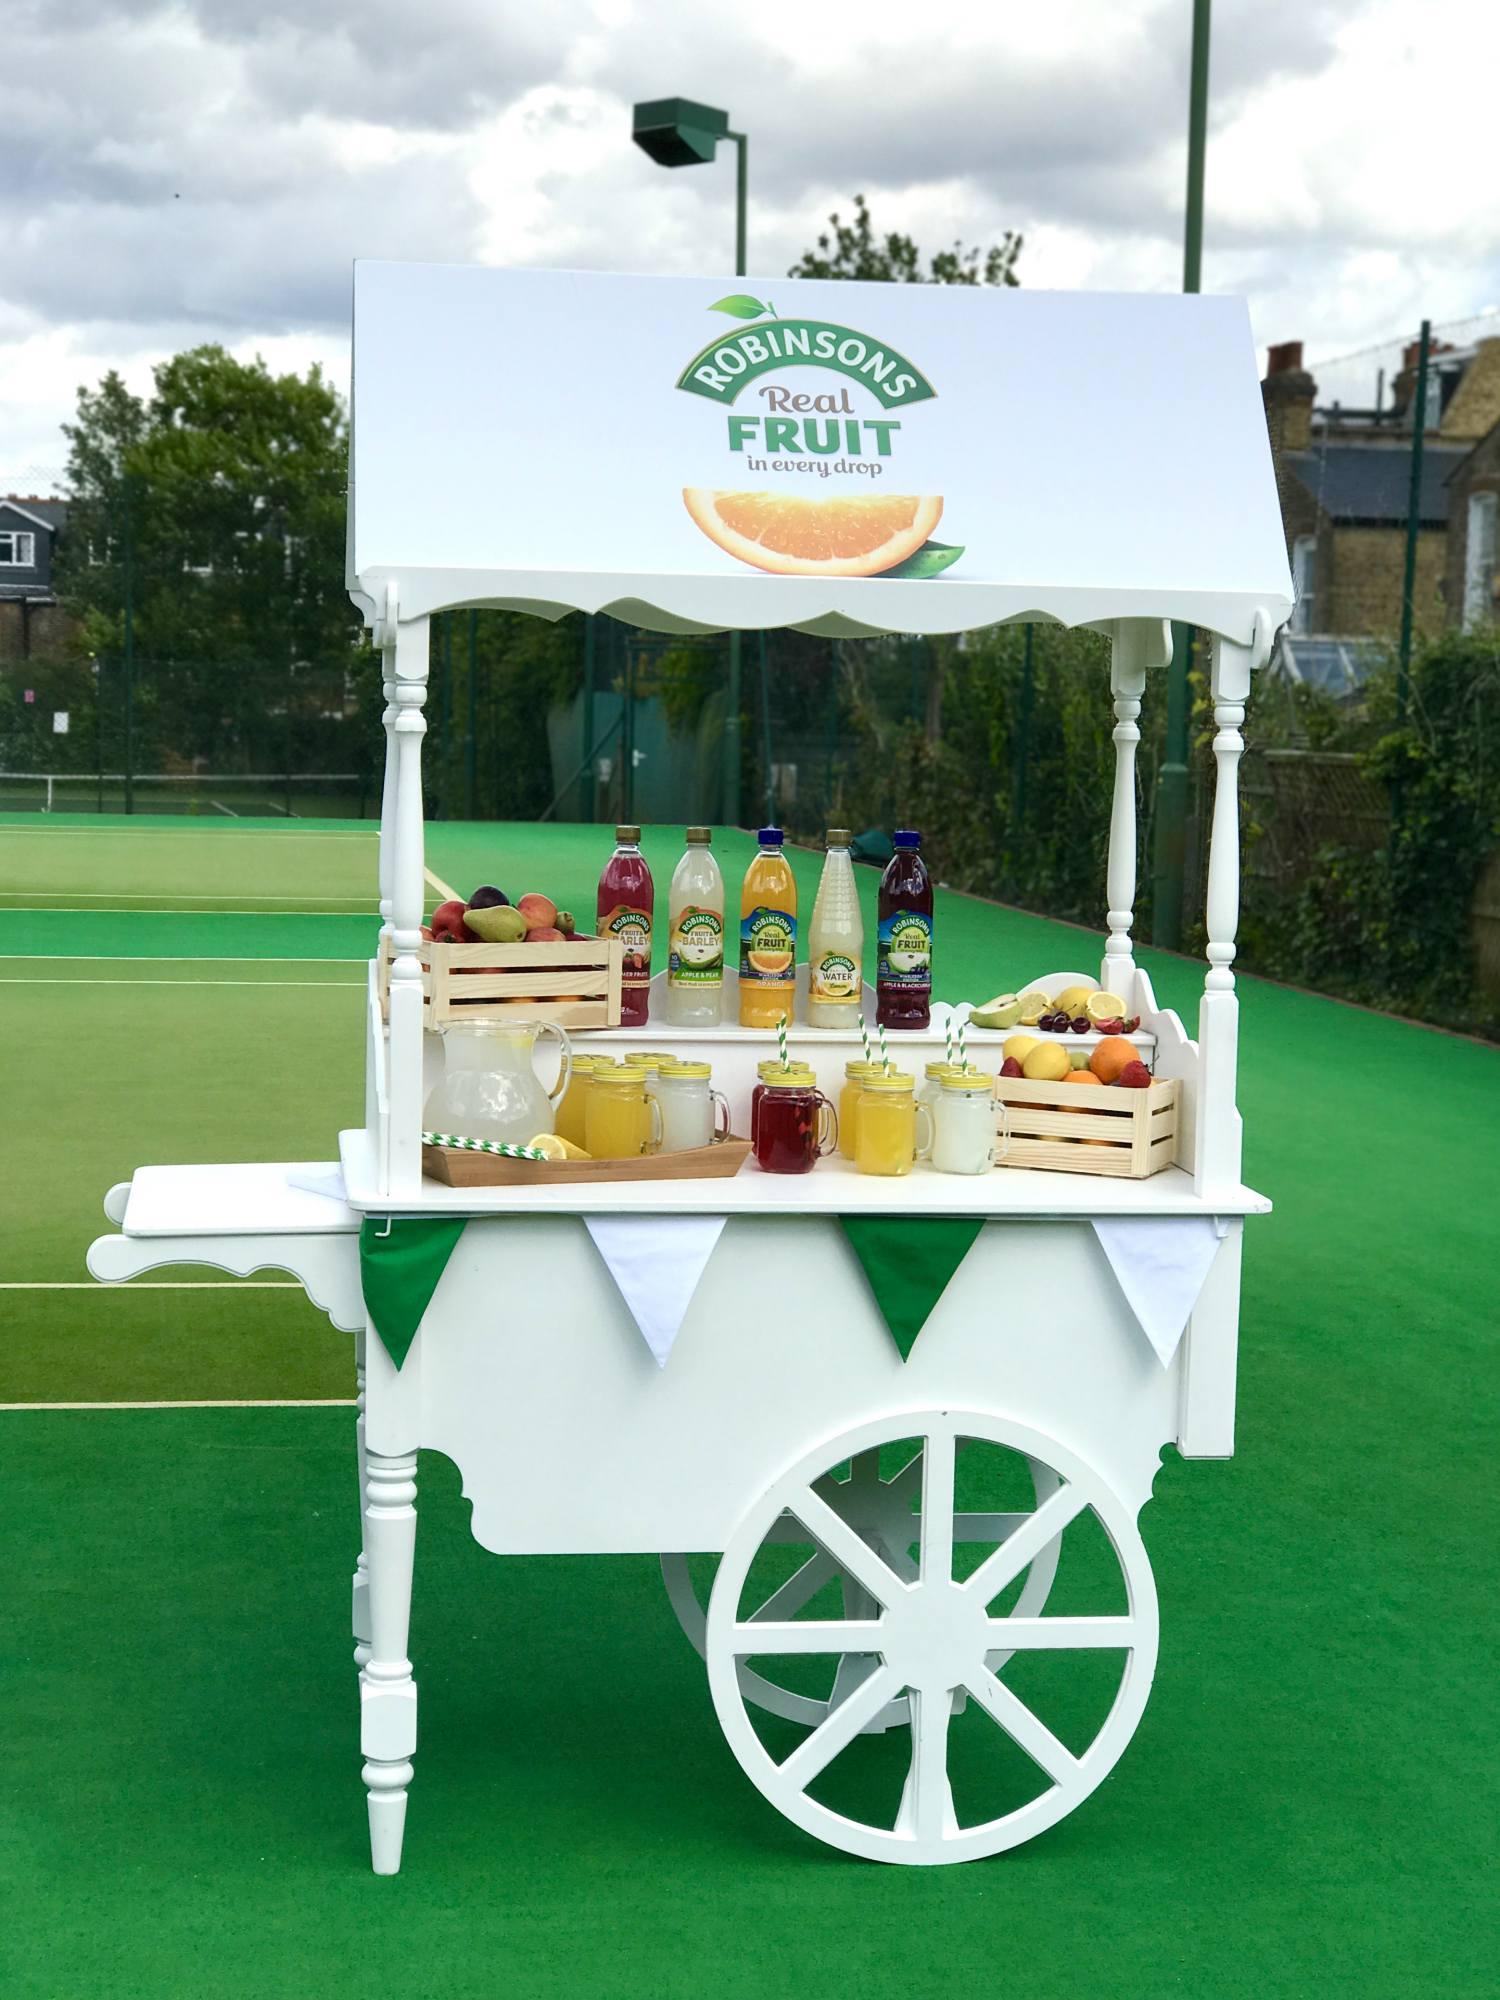 Wimbledon with Robinsons